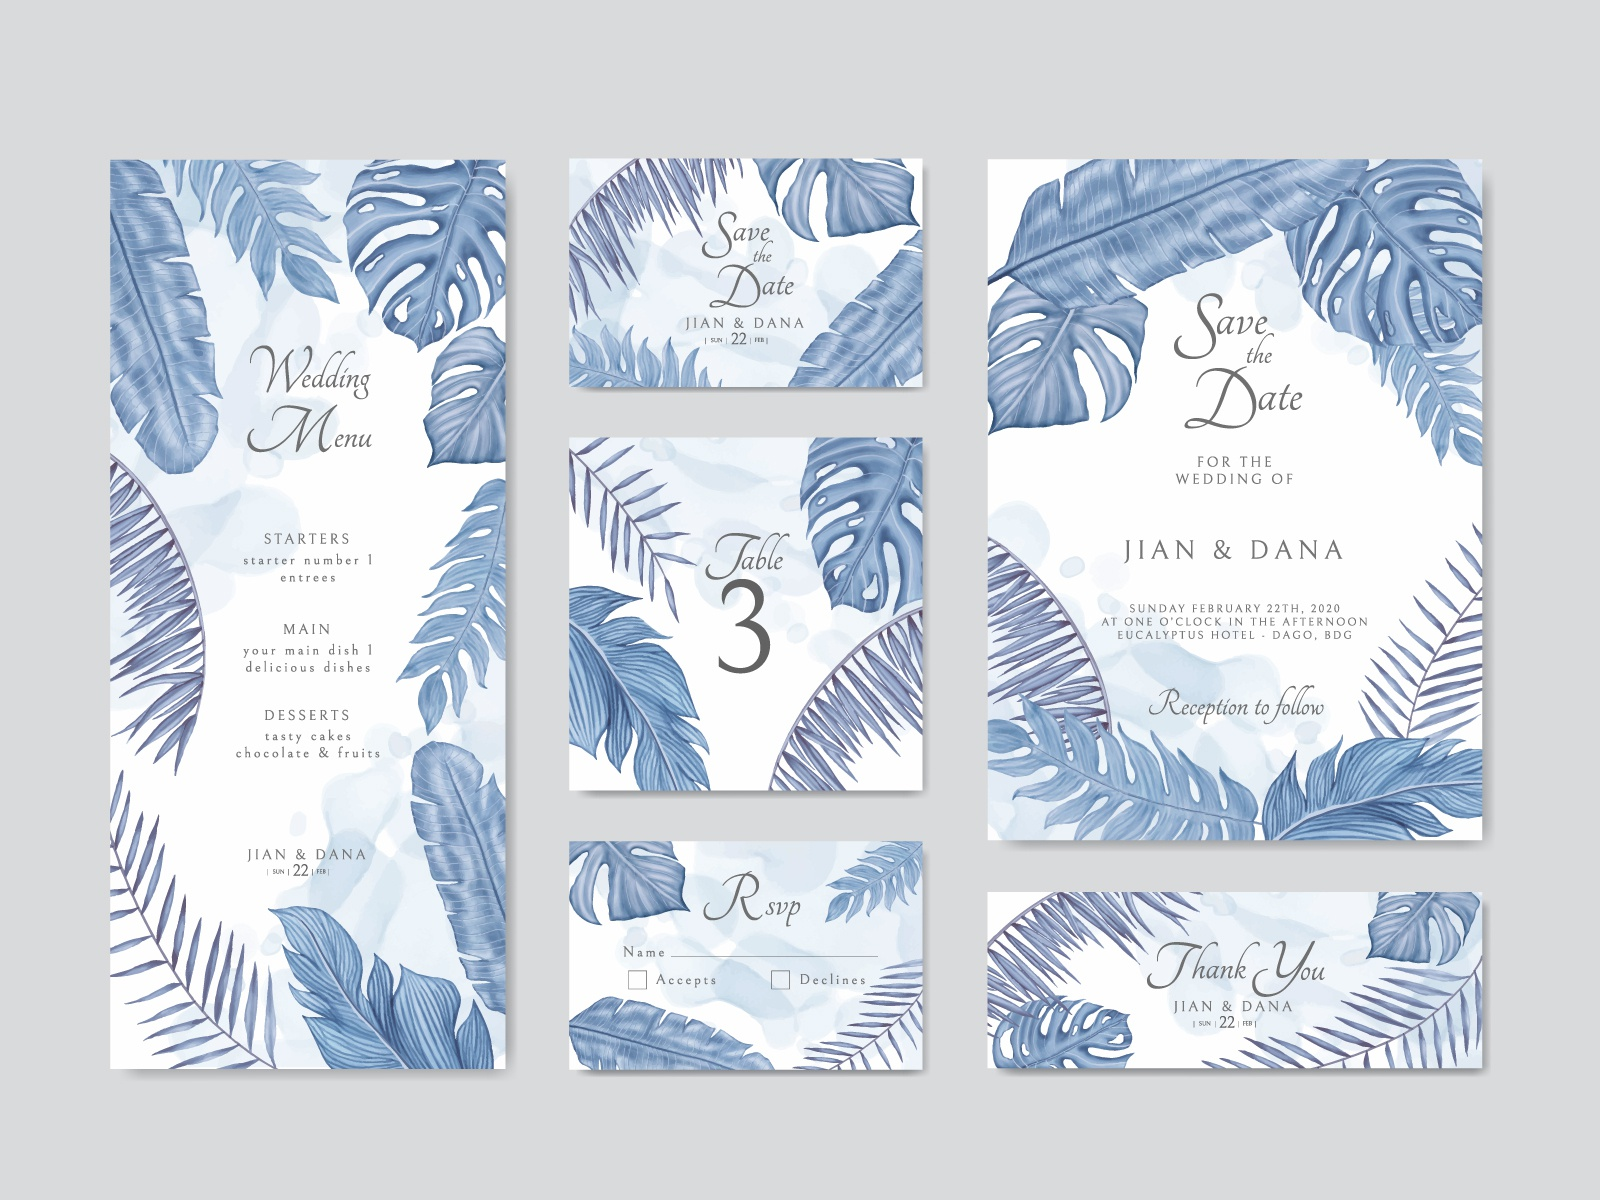 Blue Exotic Tropical Leaves Frame Wedding Invitation Template By Dheo Donny Adittya On Dribbble To get more templates about posters,flyers,brochures,card,mockup,logo,video,sound,ppt,word,please visit pikbest.com. blue exotic tropical leaves frame